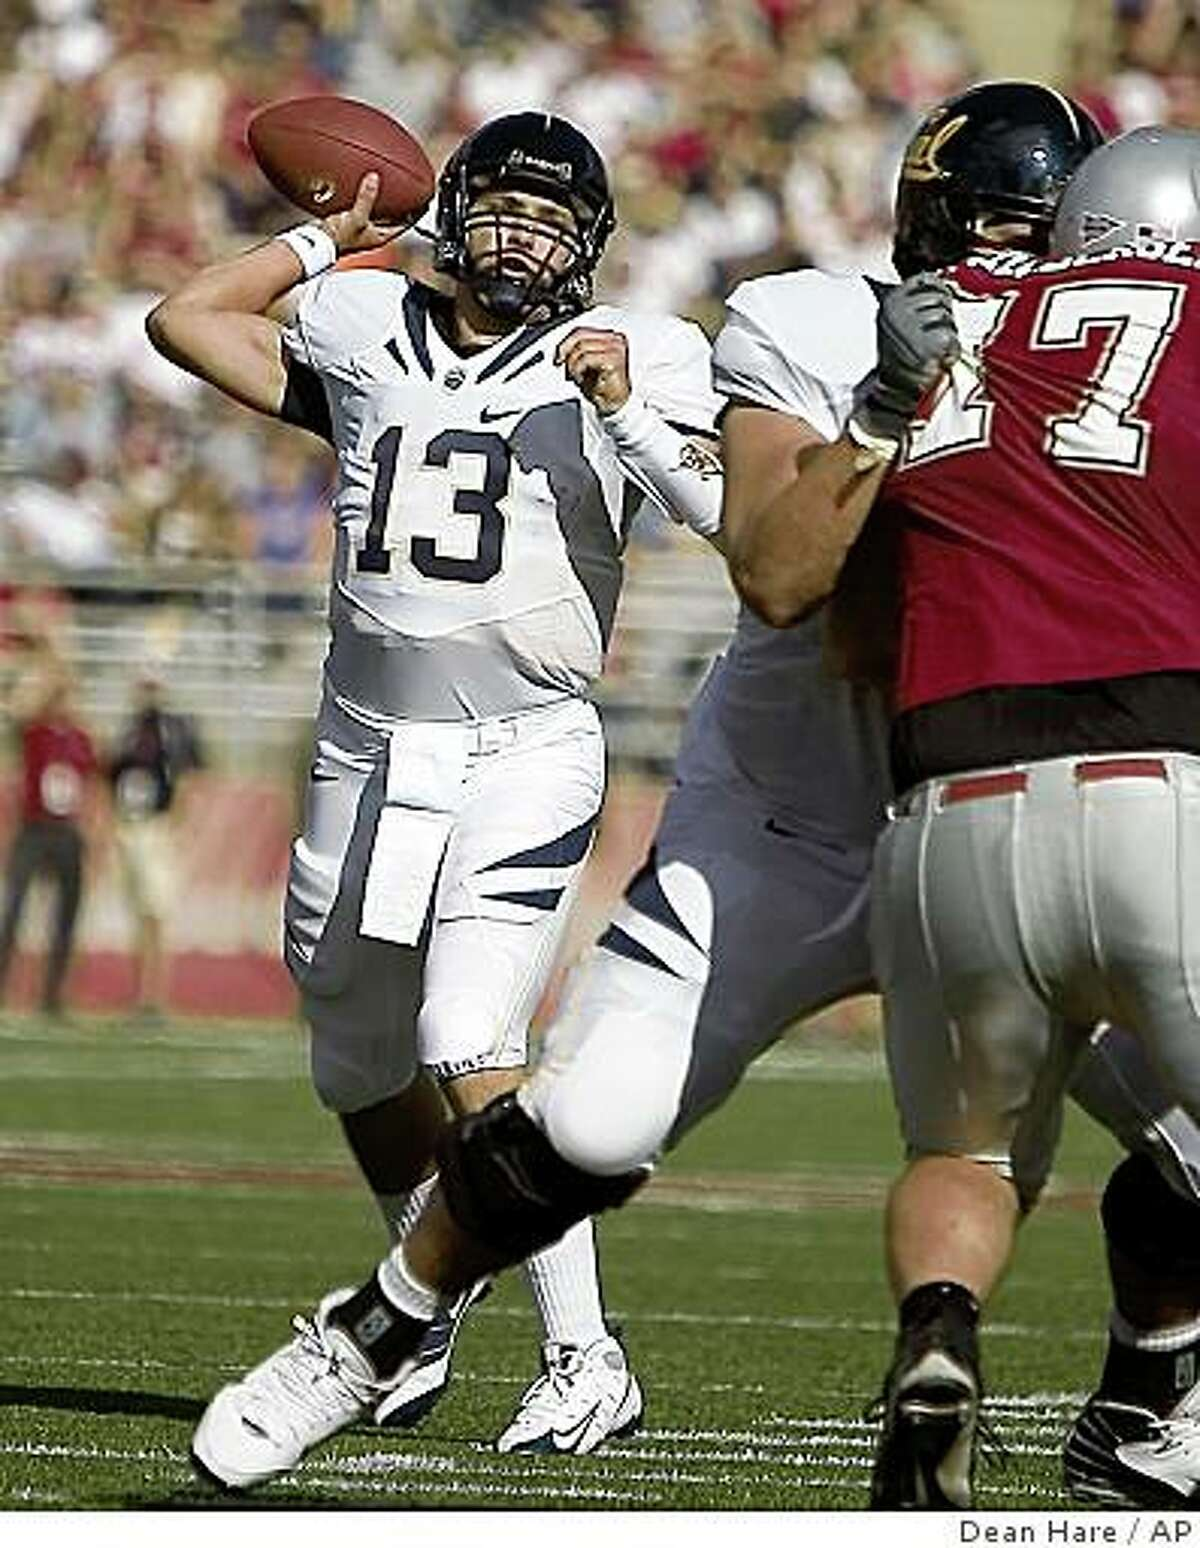 California quarterback Kevin Riley (13) throws a touchdown pass to Sean Young as center Alex Mack blocks Washington State tackle Matt Eichelberger (77) in the first quarter of an NCAA college football game Saturday, Sept. 6, 2008, at Martin Stadium in Pullman, Wash. (AP Photo/Dean Hare)